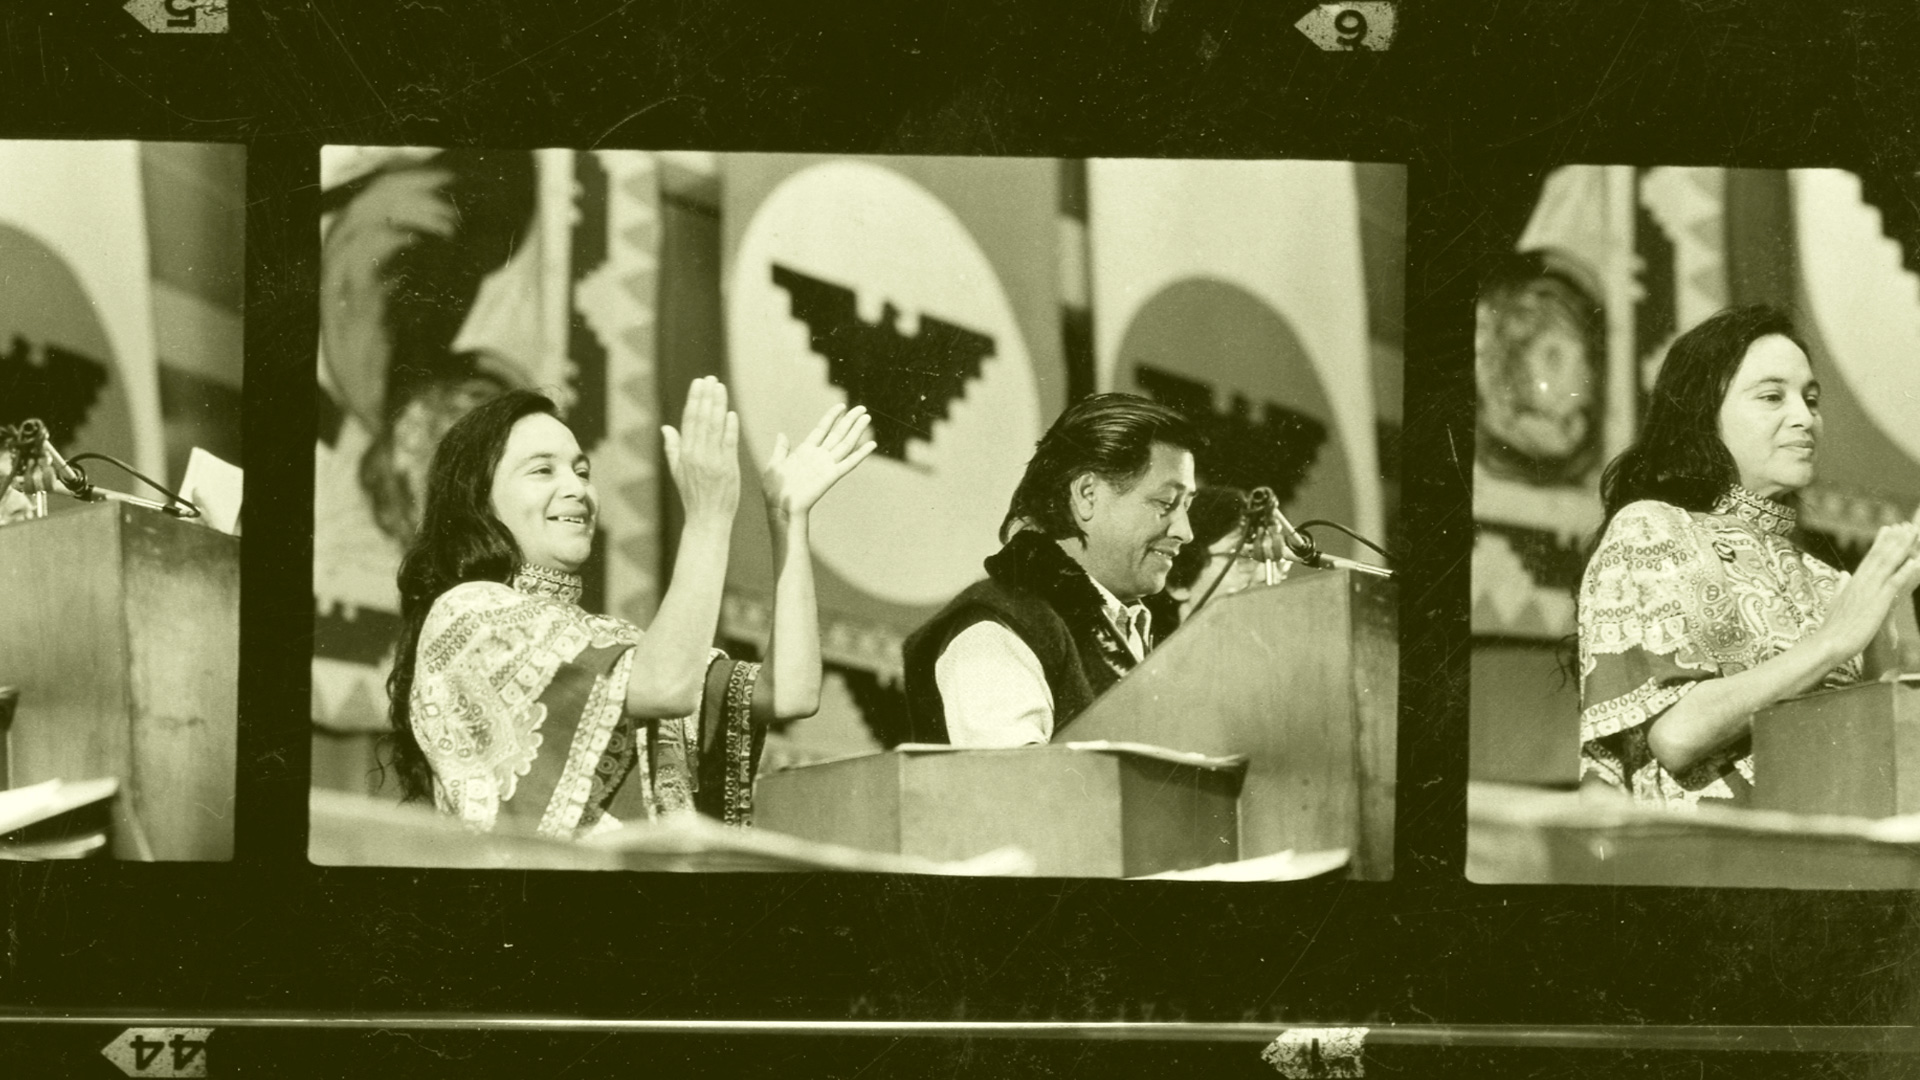 Dolores Huerta, with Cesar Chavez, in public speech from the 60s, in a film strip image